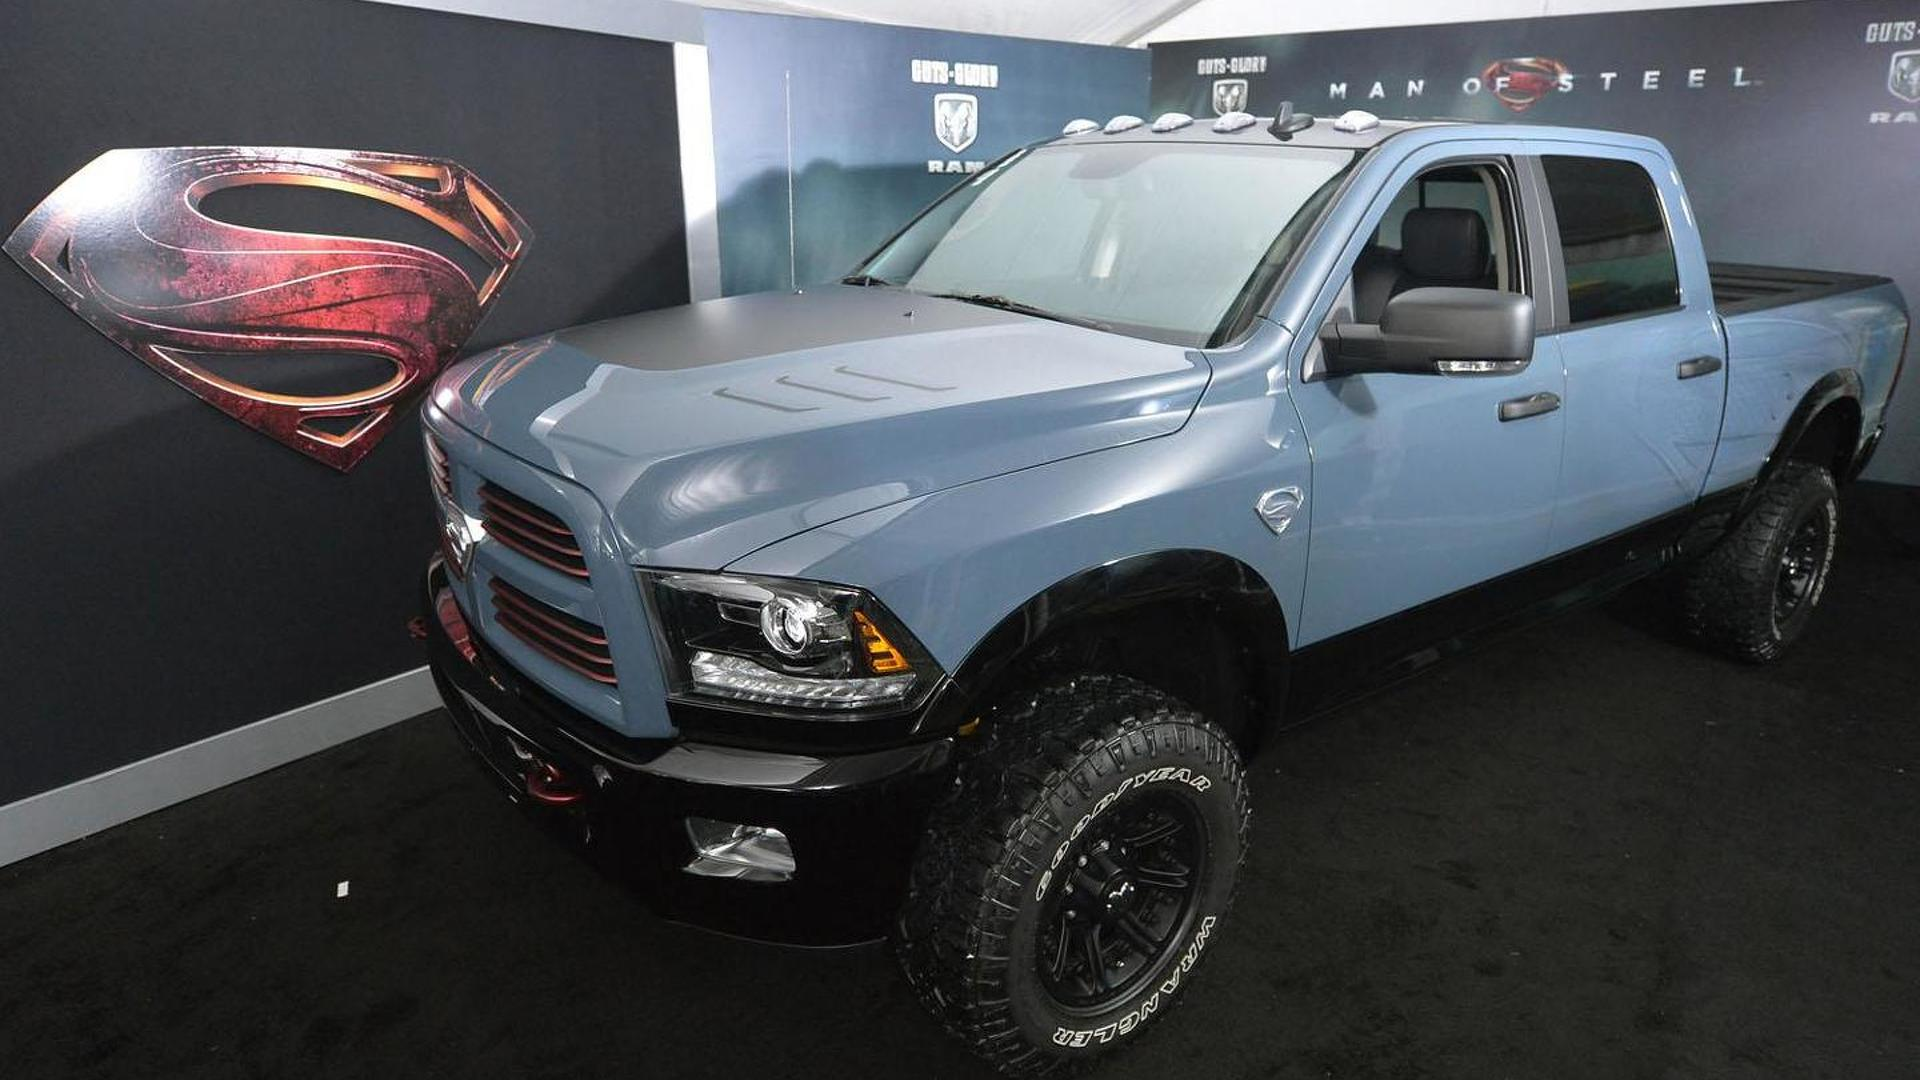 Superman-themed Ram 2500 Power Wagon up for auction